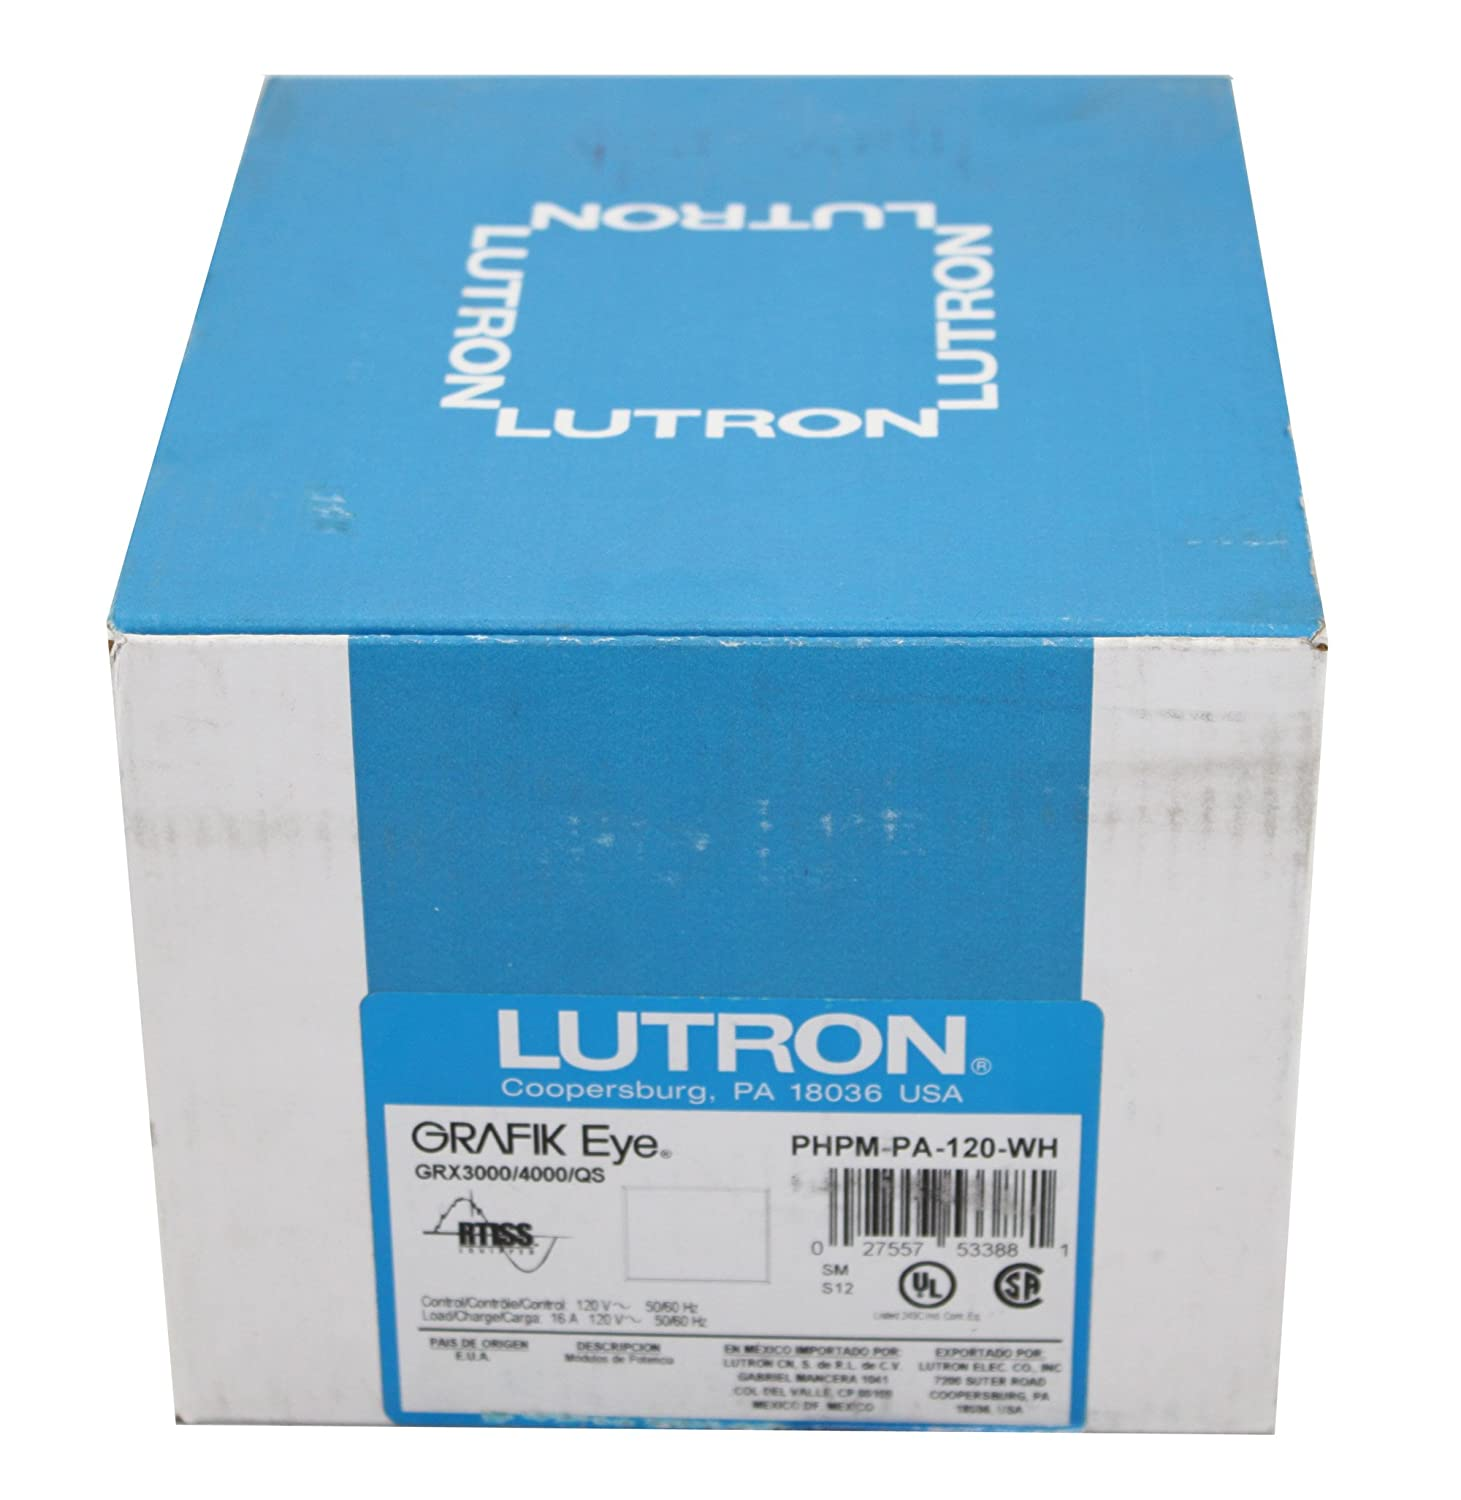 Amazon.com: Lutron PHPM-PA-120-WH Power Mod Phase-Adapter 120V White ...